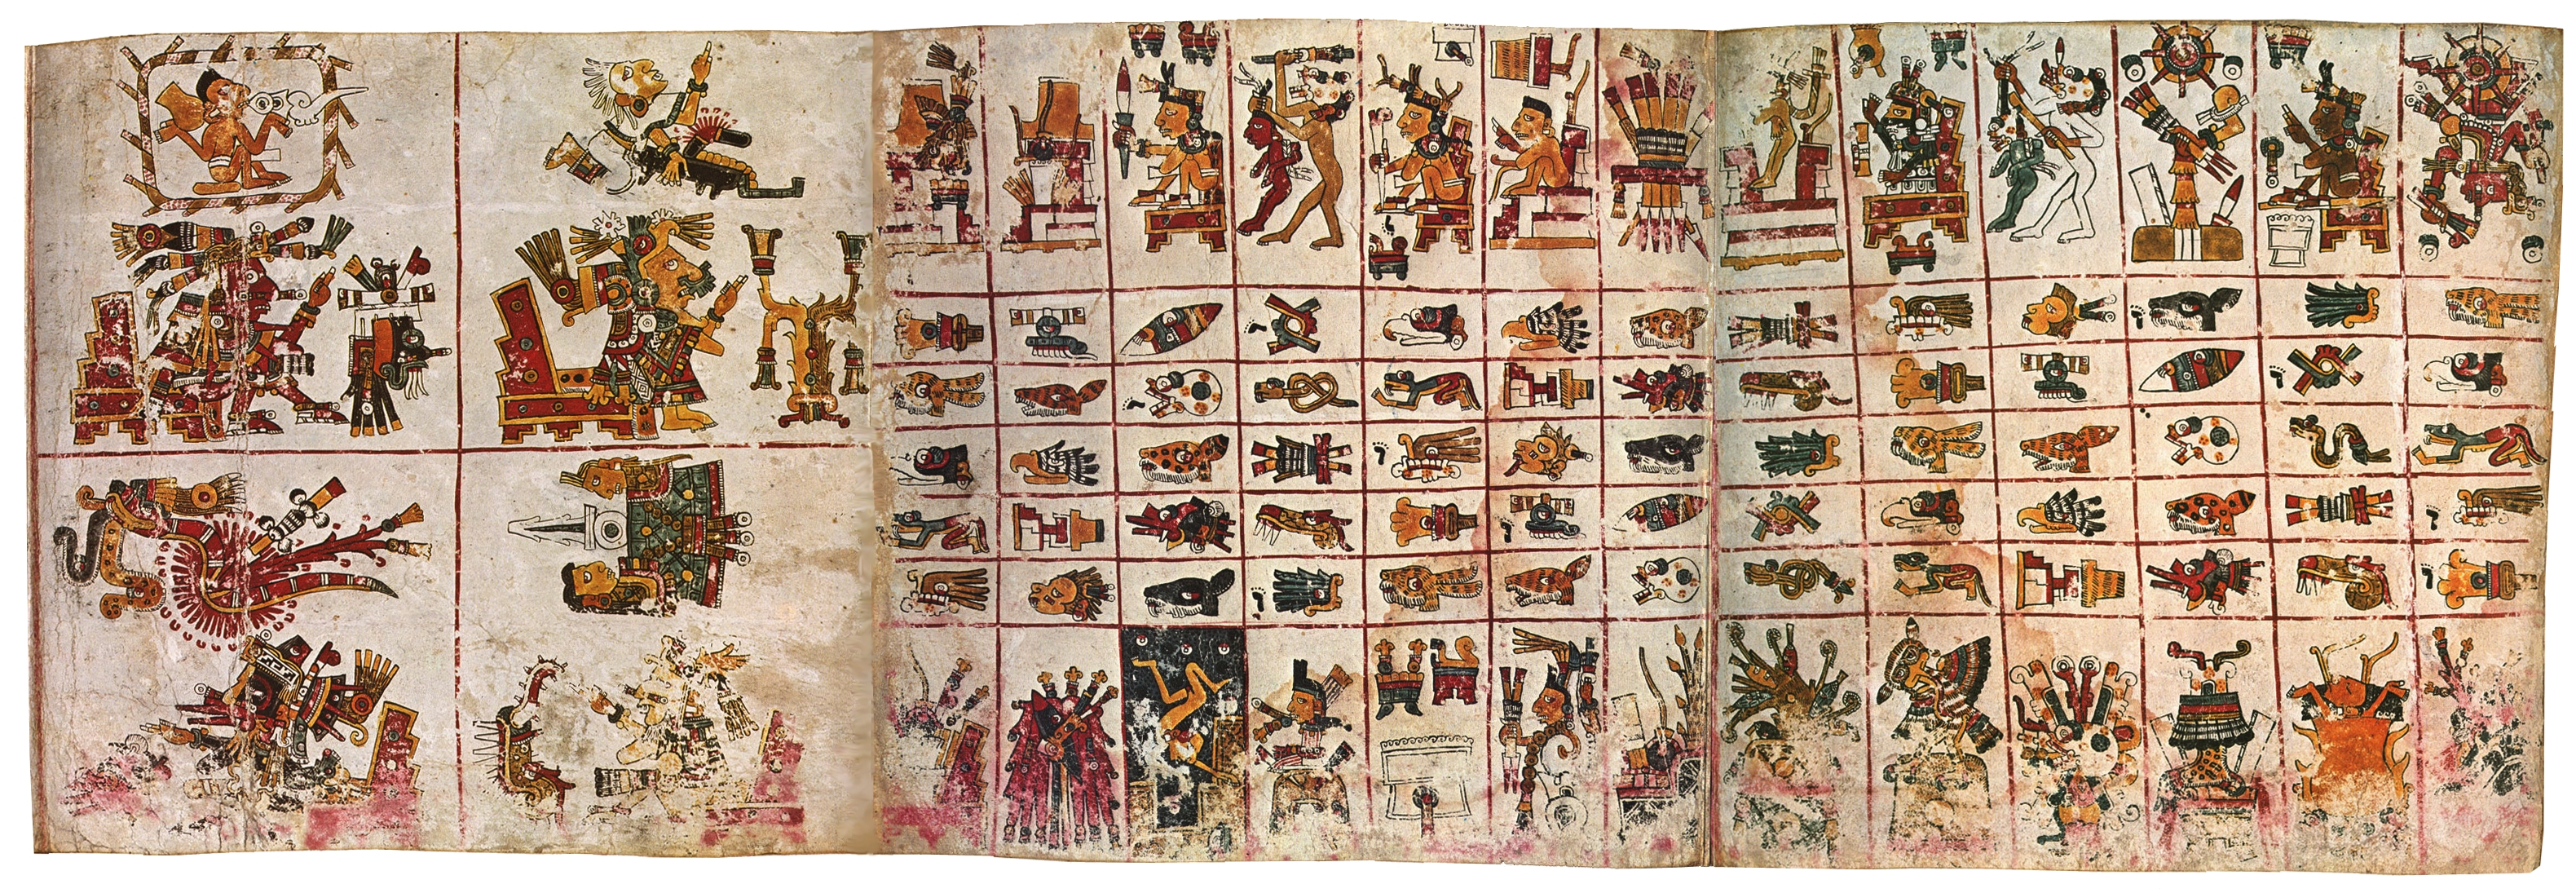 FIGURE 7. Three pages from the Codex Borgia, a divinatory almanac.